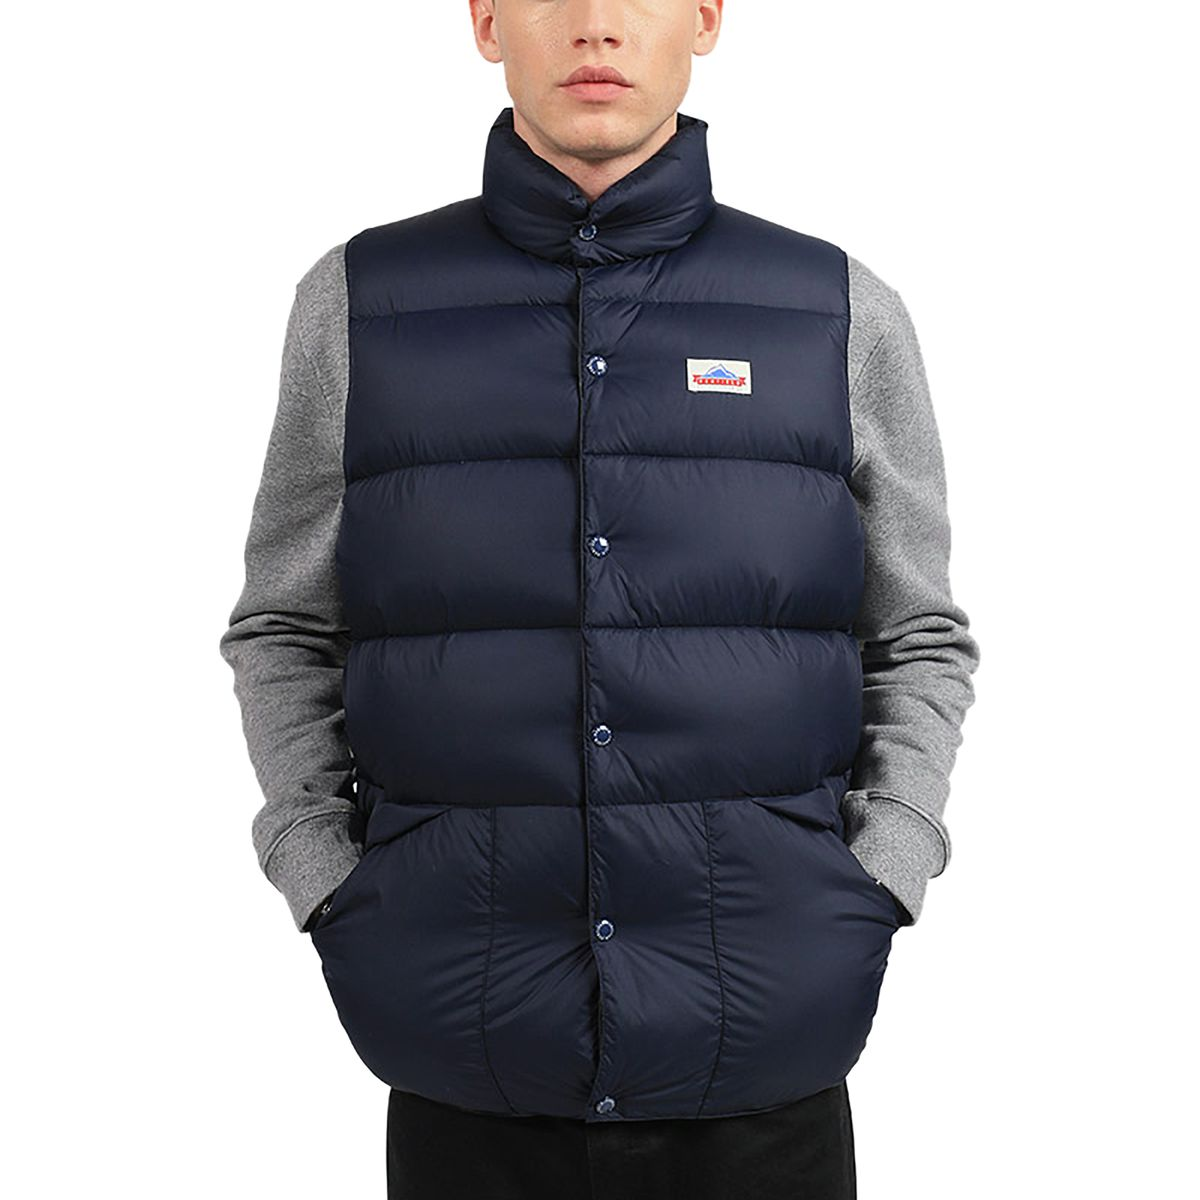 Penfield Outback Colorblocked Down Vest - Men